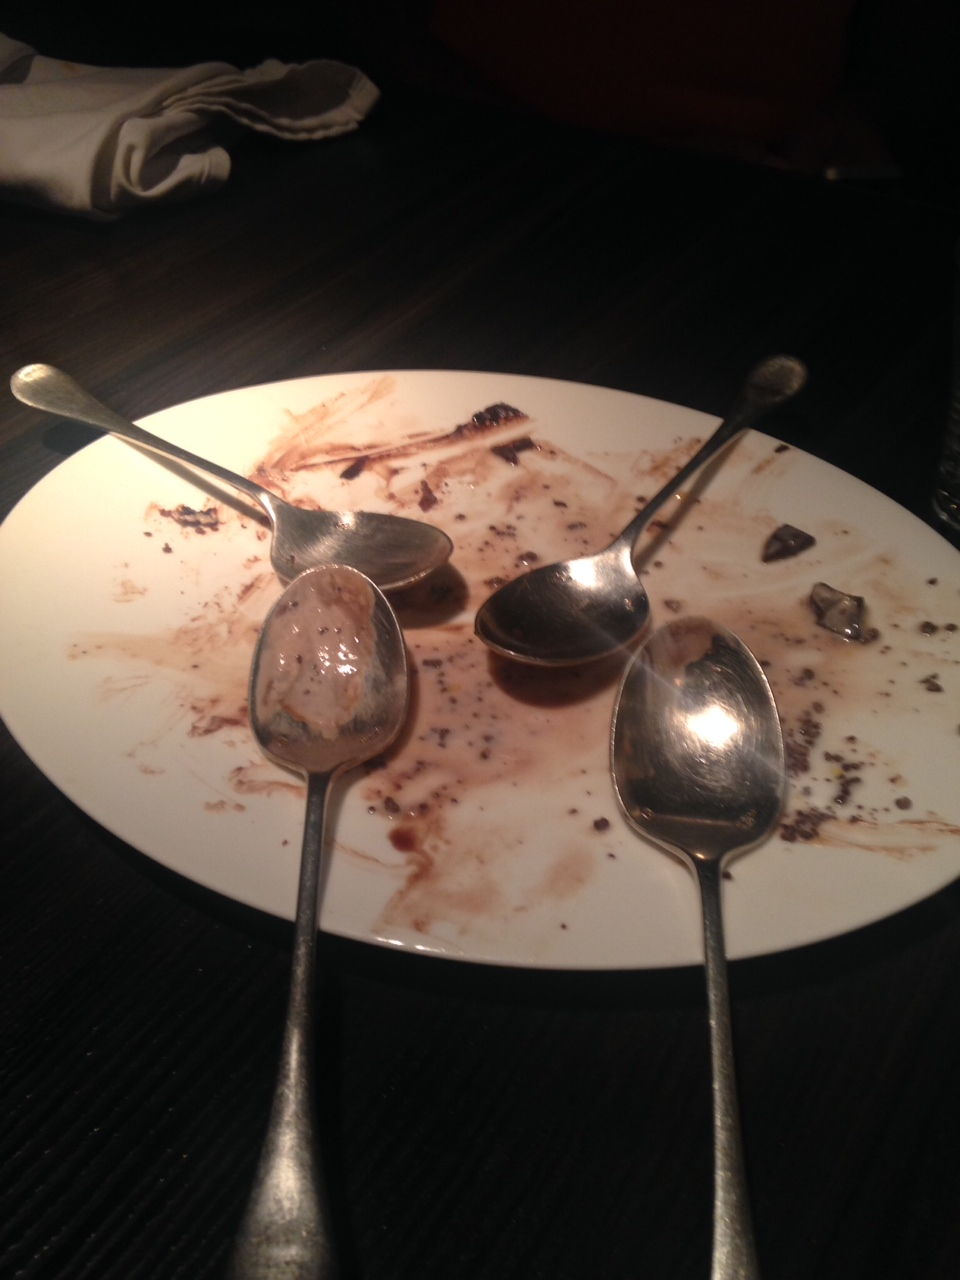 The End of A Good Meal :-)